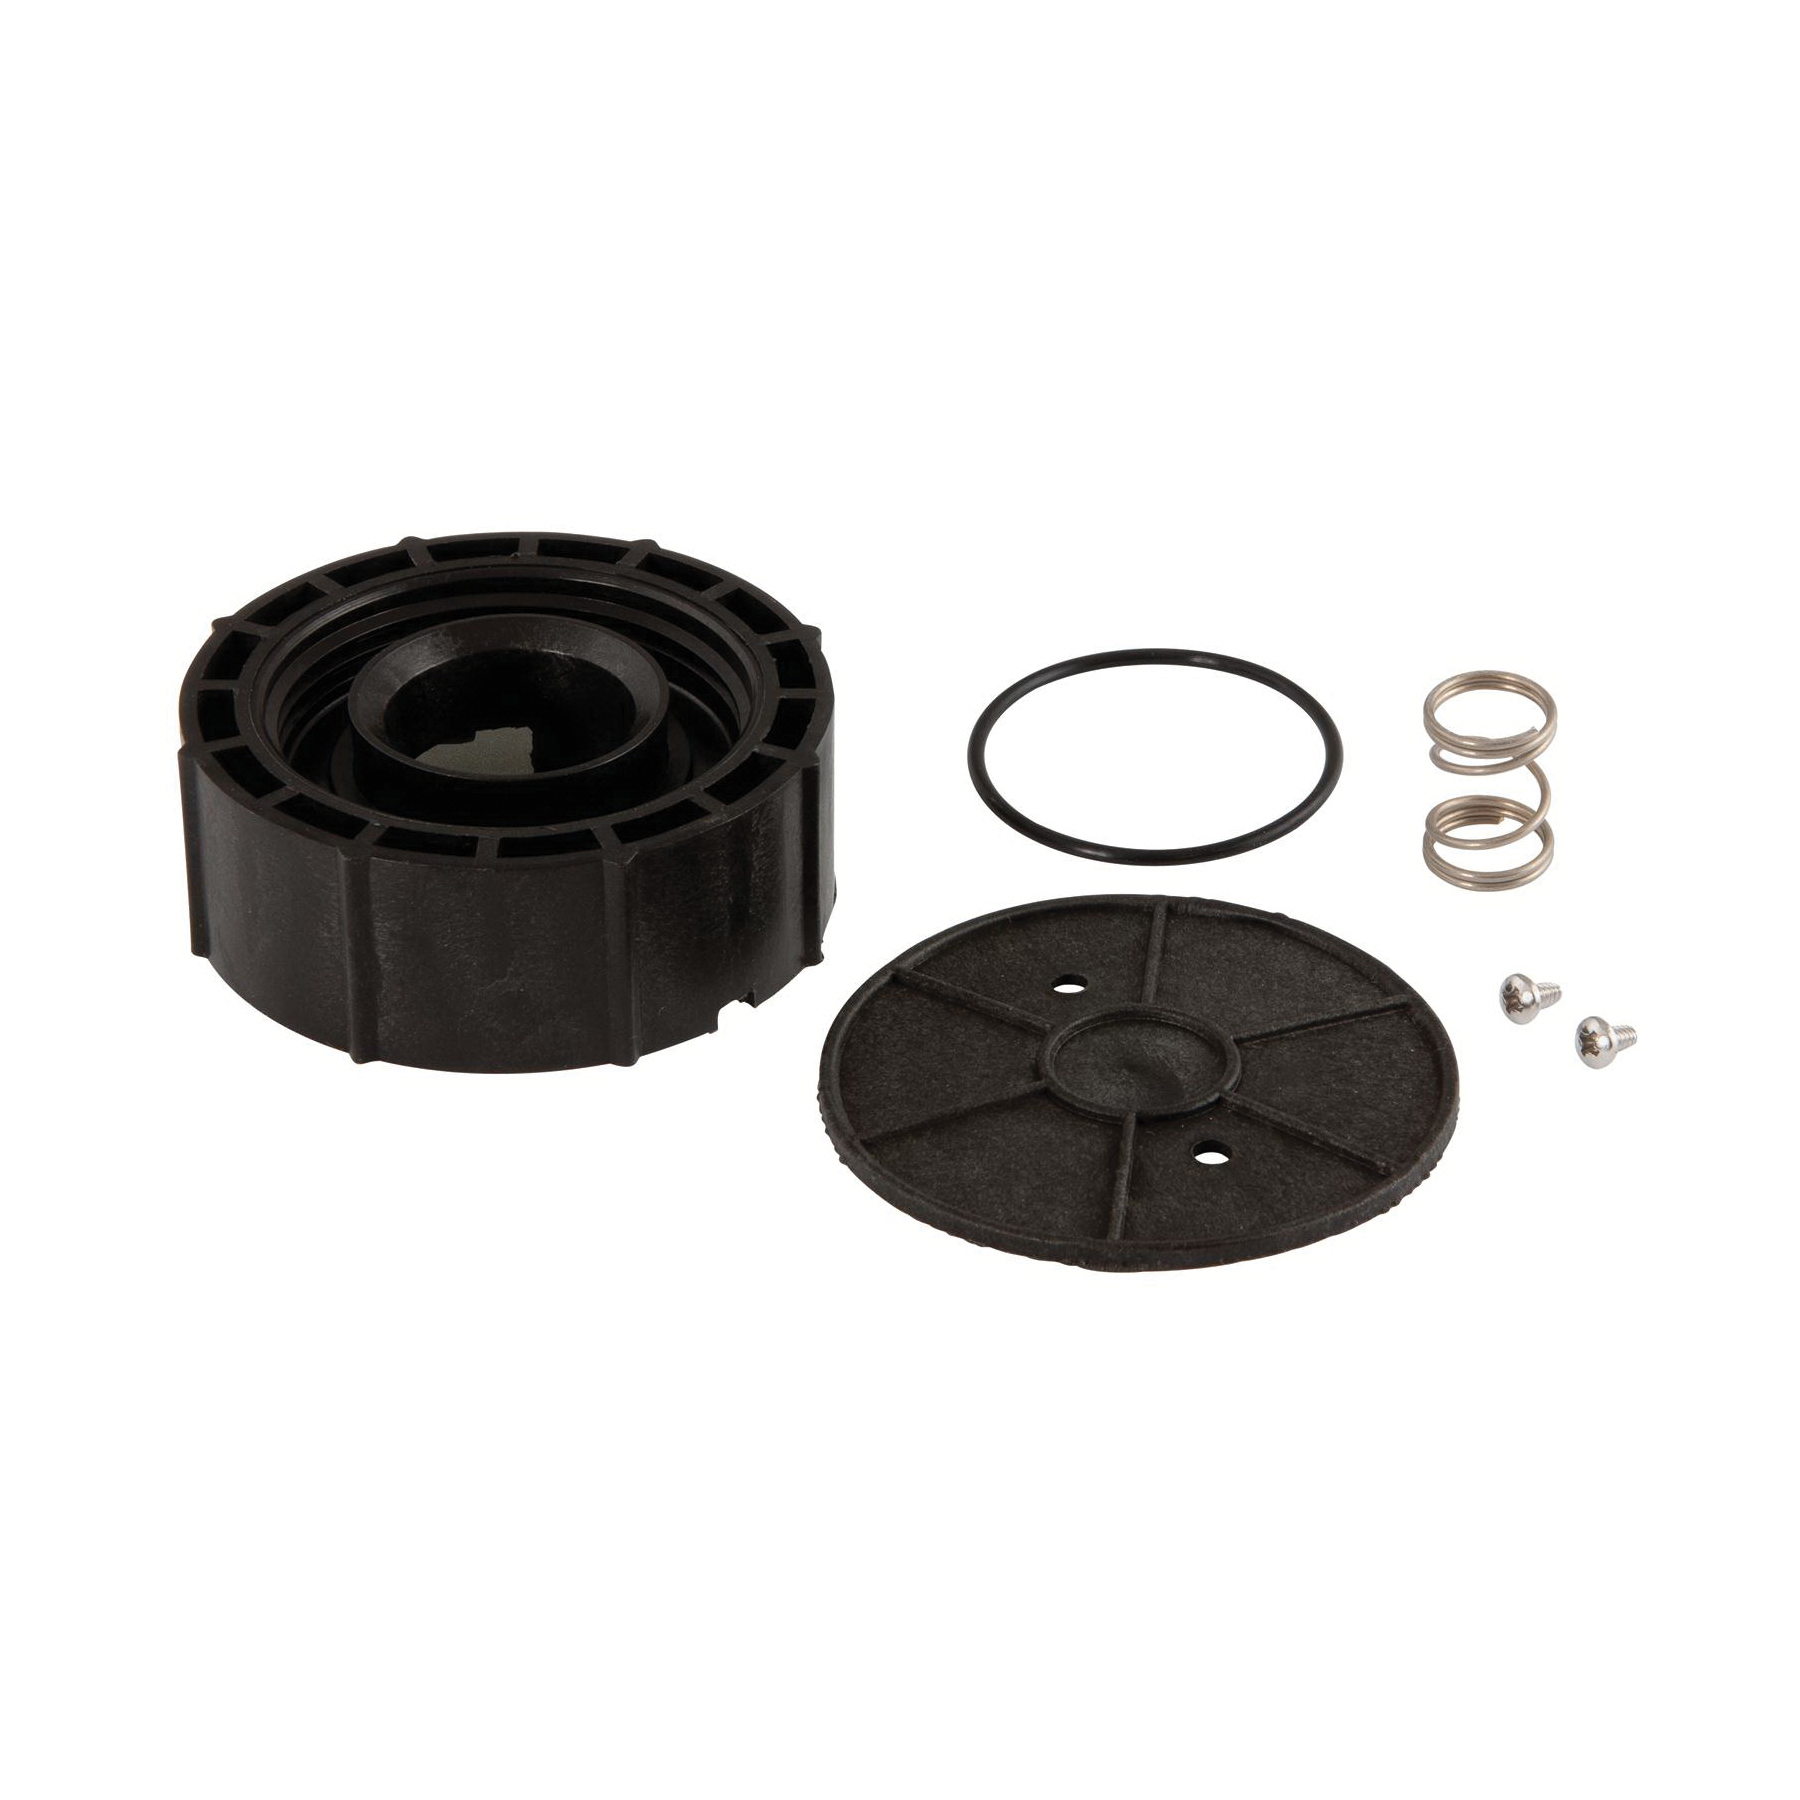 WATTS® 0887701 RK 800M4-B Bonnet Kit, For Use With LF800M4/800M4 1 in Backflow Pressure Vacuum Breaker